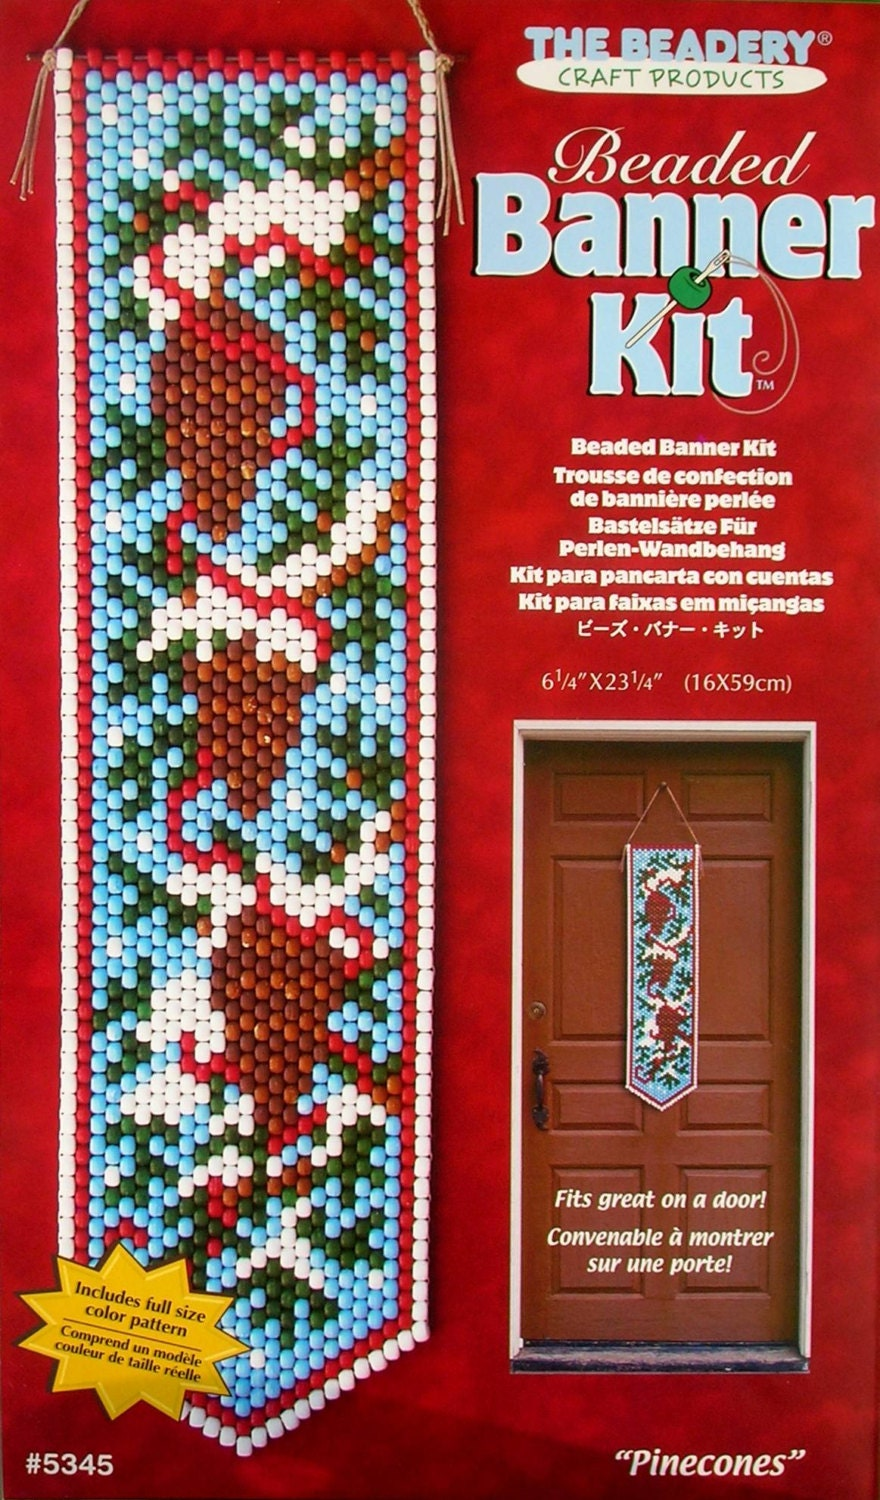 5345 pinecones beaded banner kit by the by